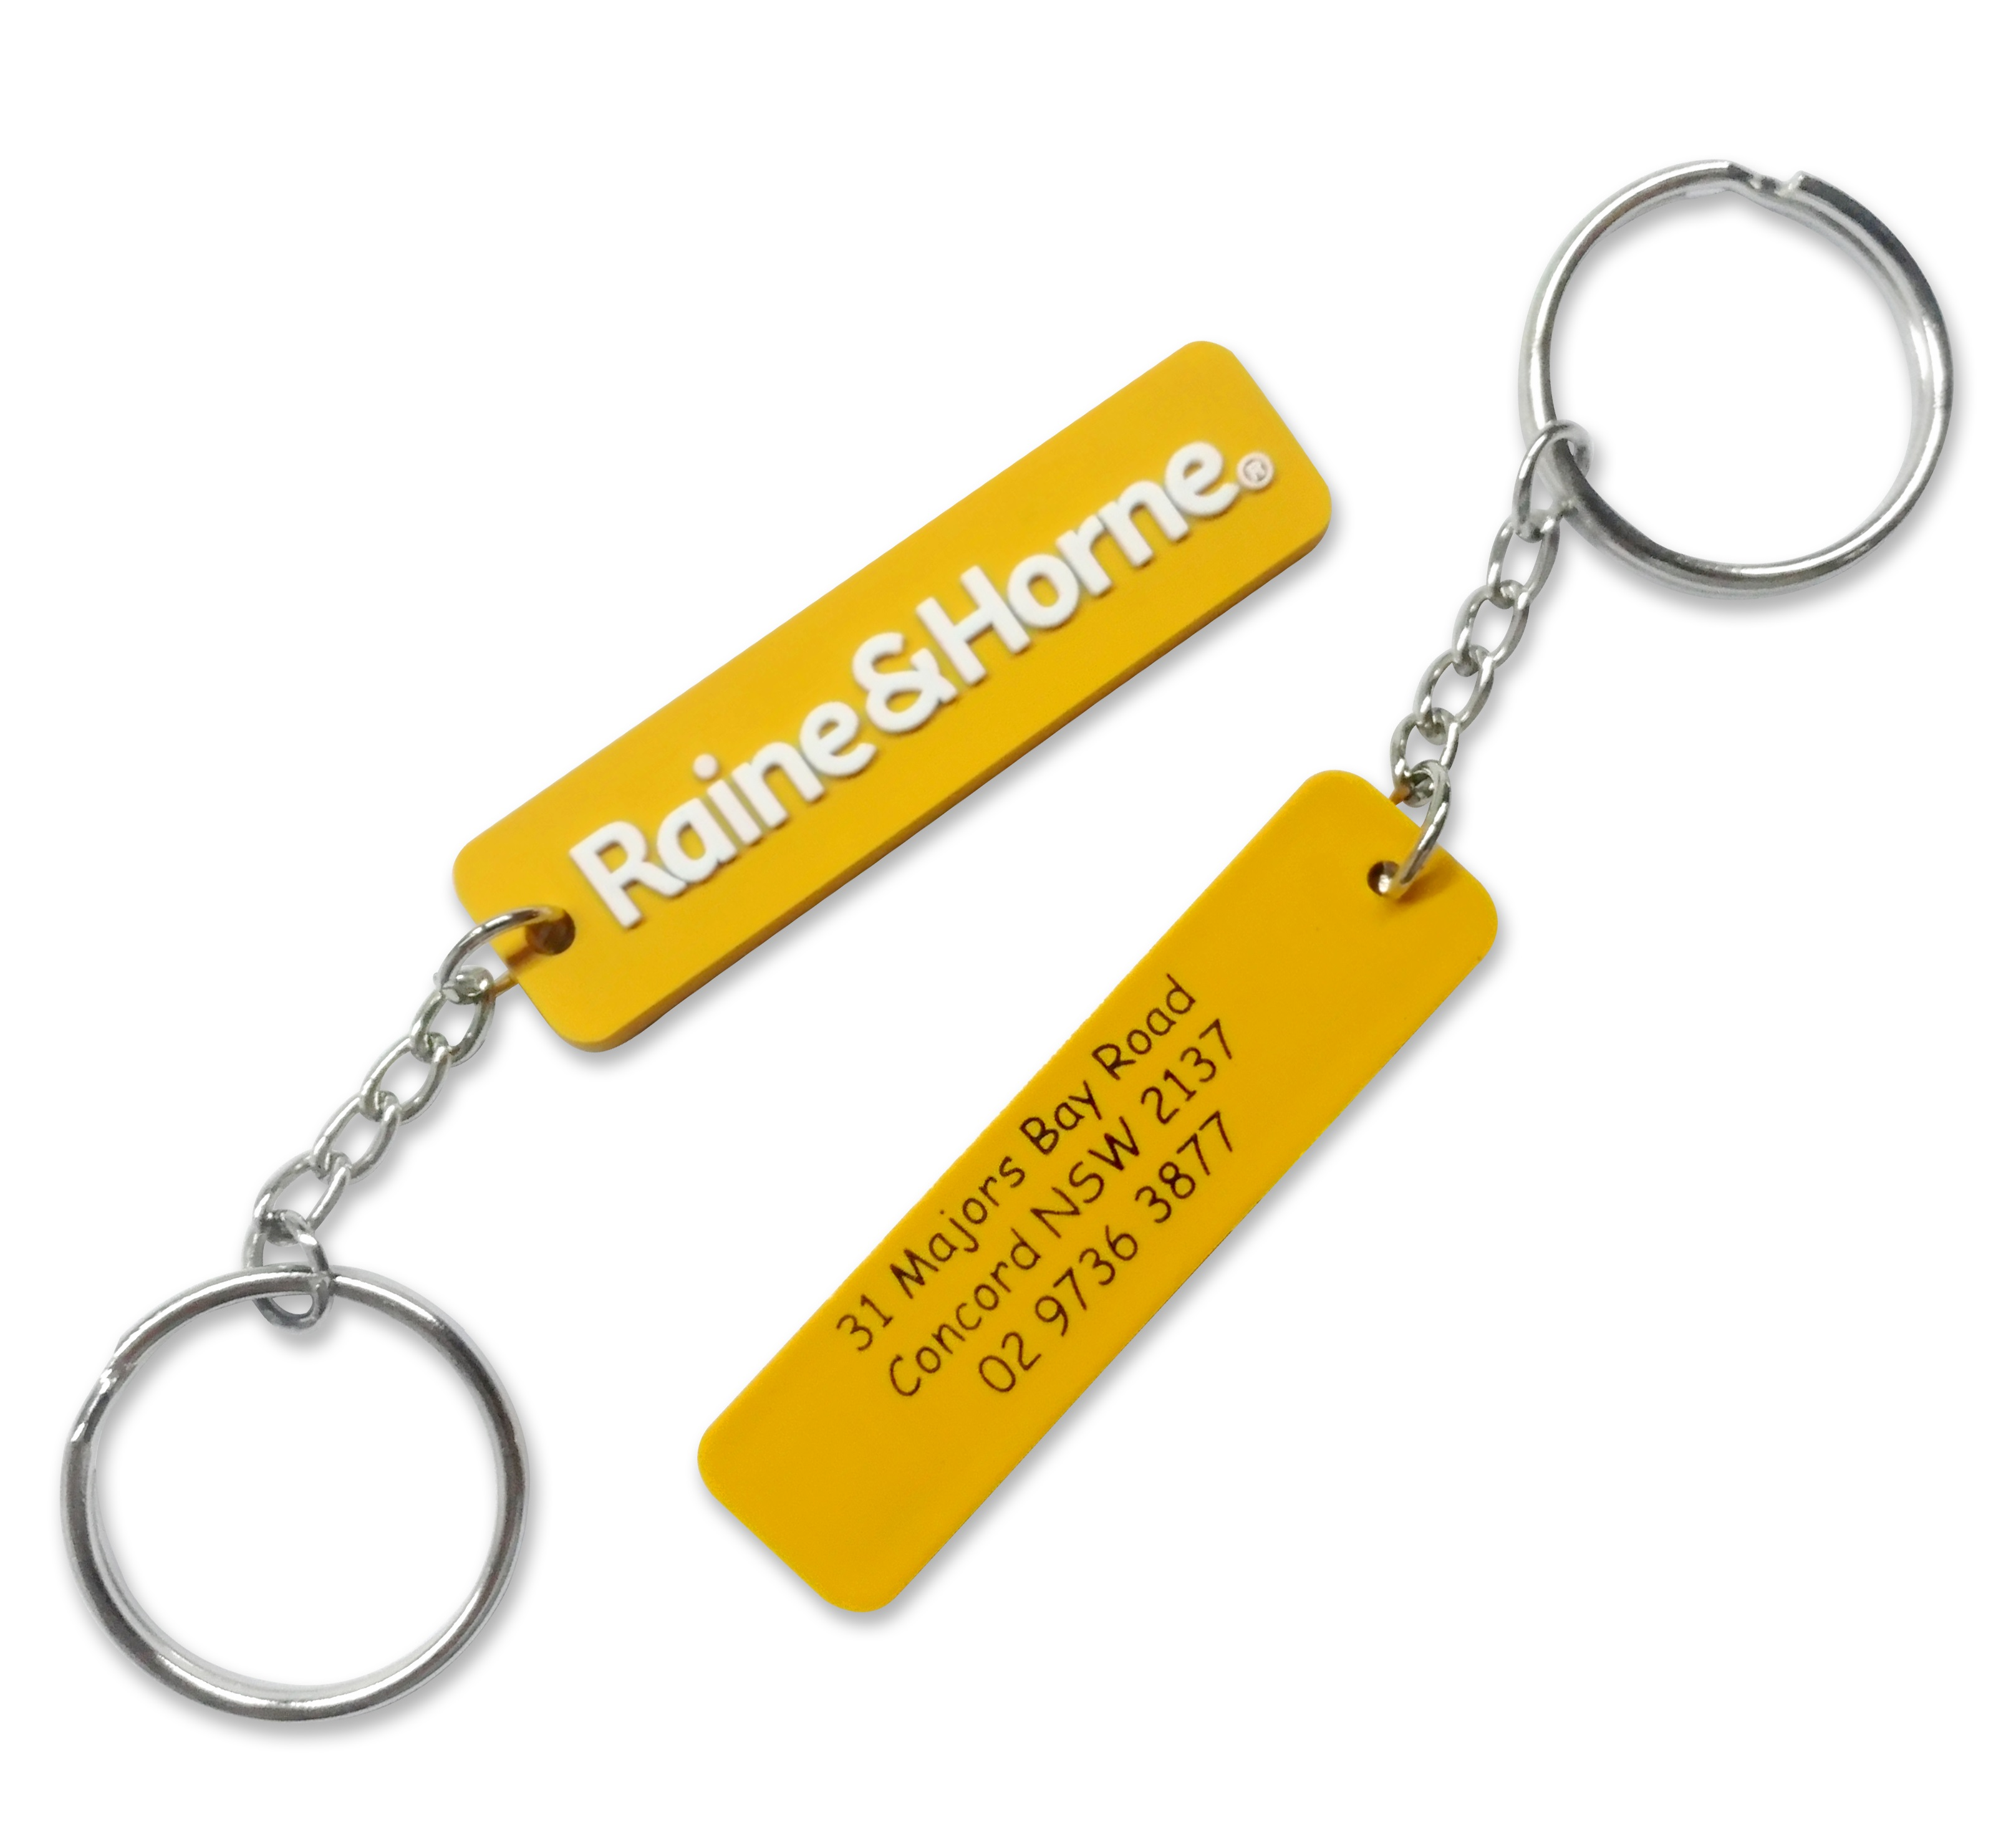 Yellow personalised rubber keyrings for a real estate company with 2D logo in white on the front and company contact details prtined in black on the back.